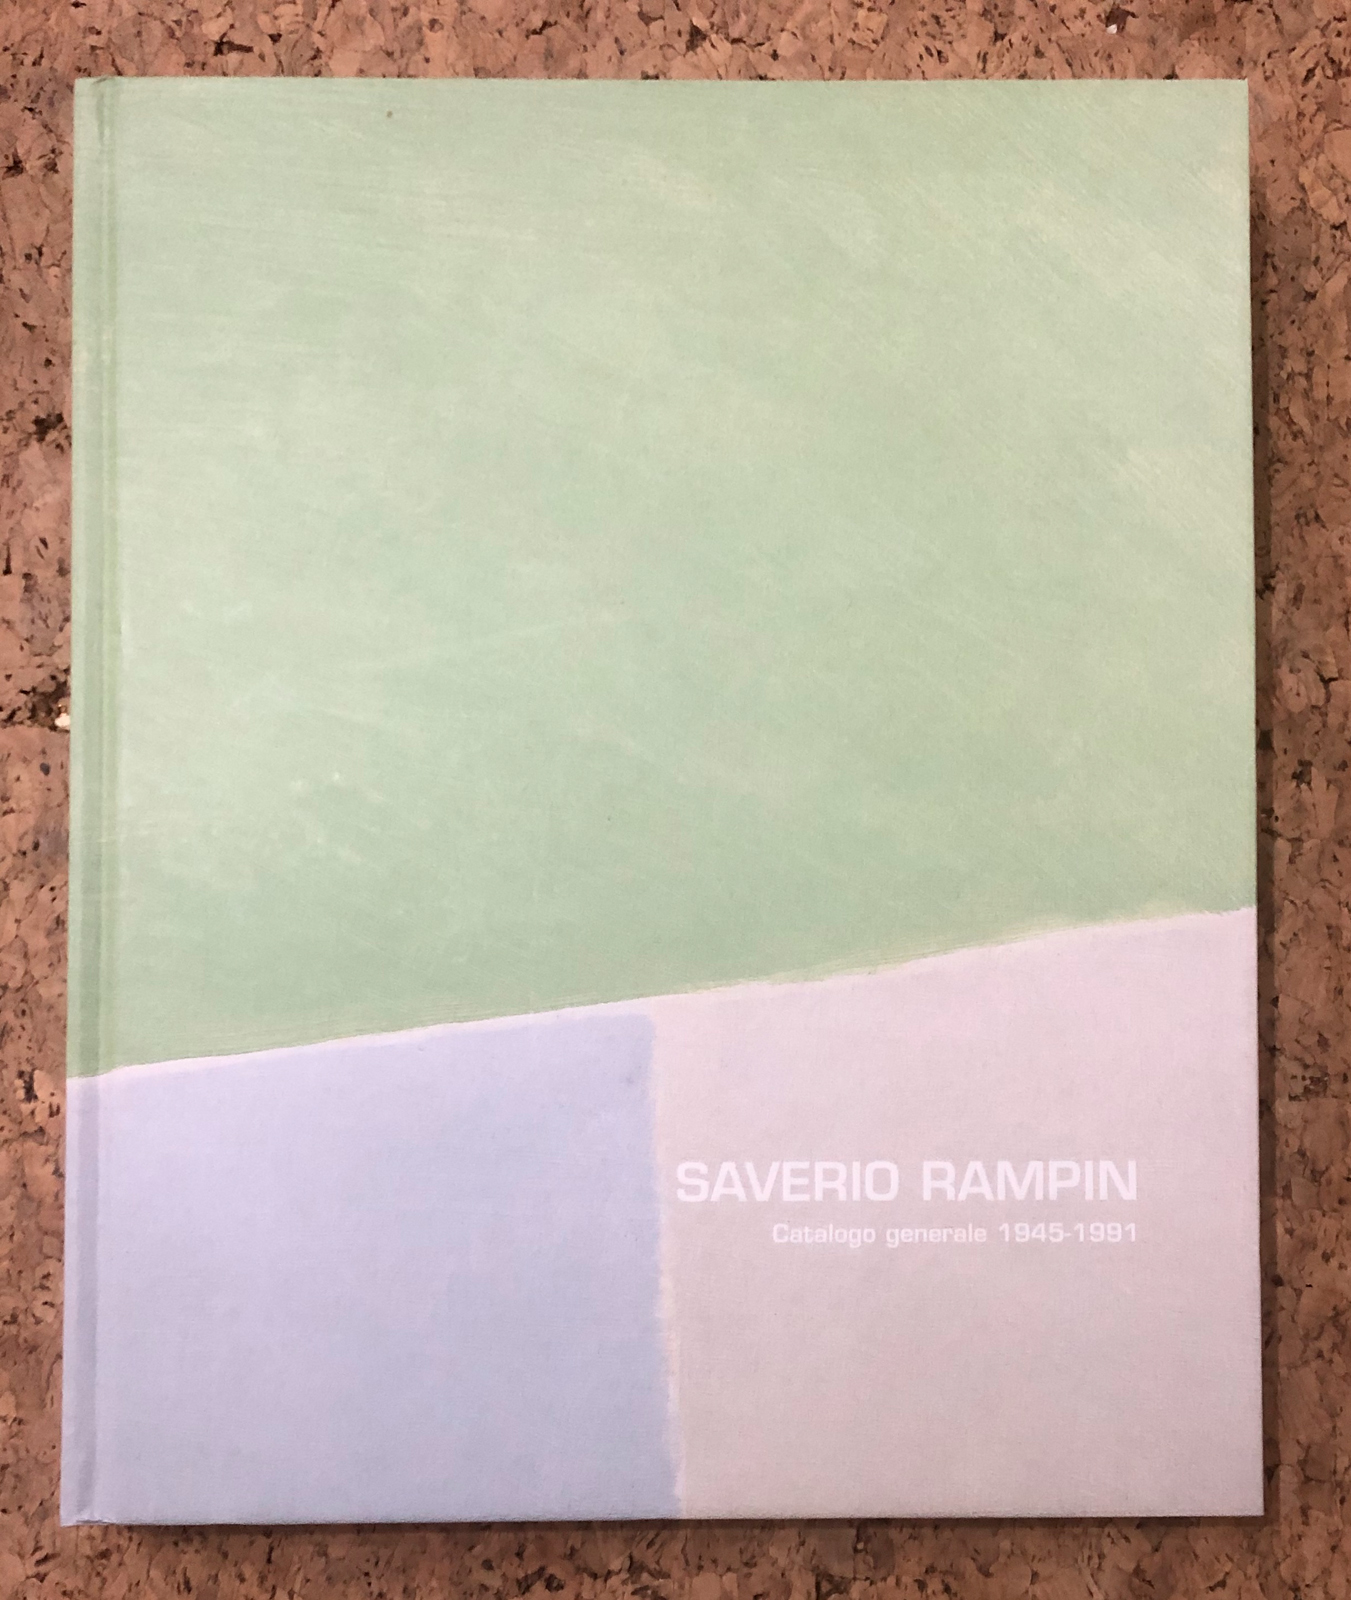 SAVERIO RAMPIN - Saverio Rampin. Catalogo generale 1945-1981, 2006